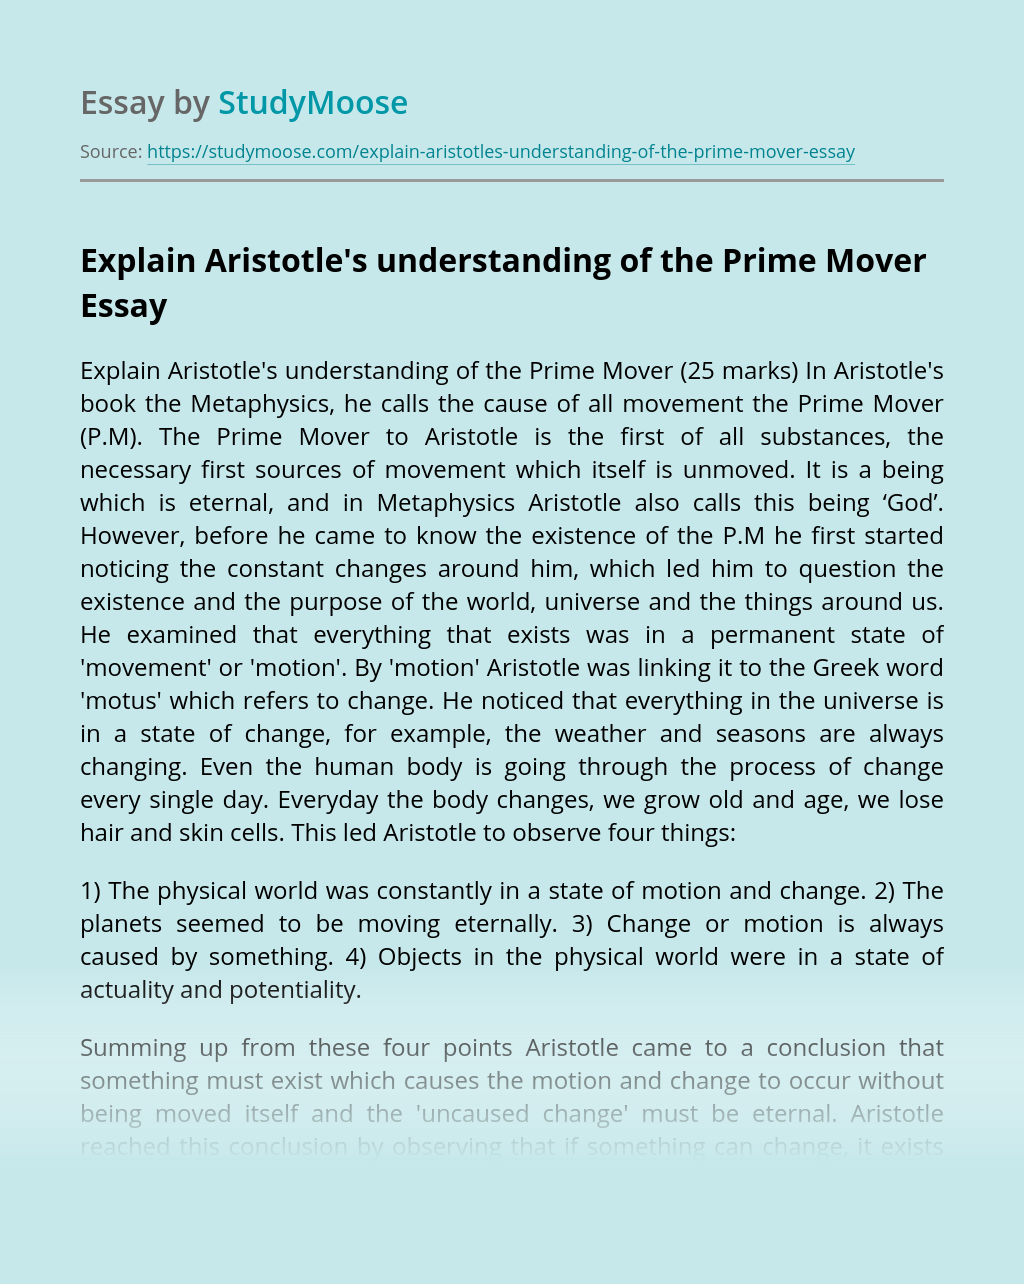 Explain Aristotle's understanding of the Prime Mover